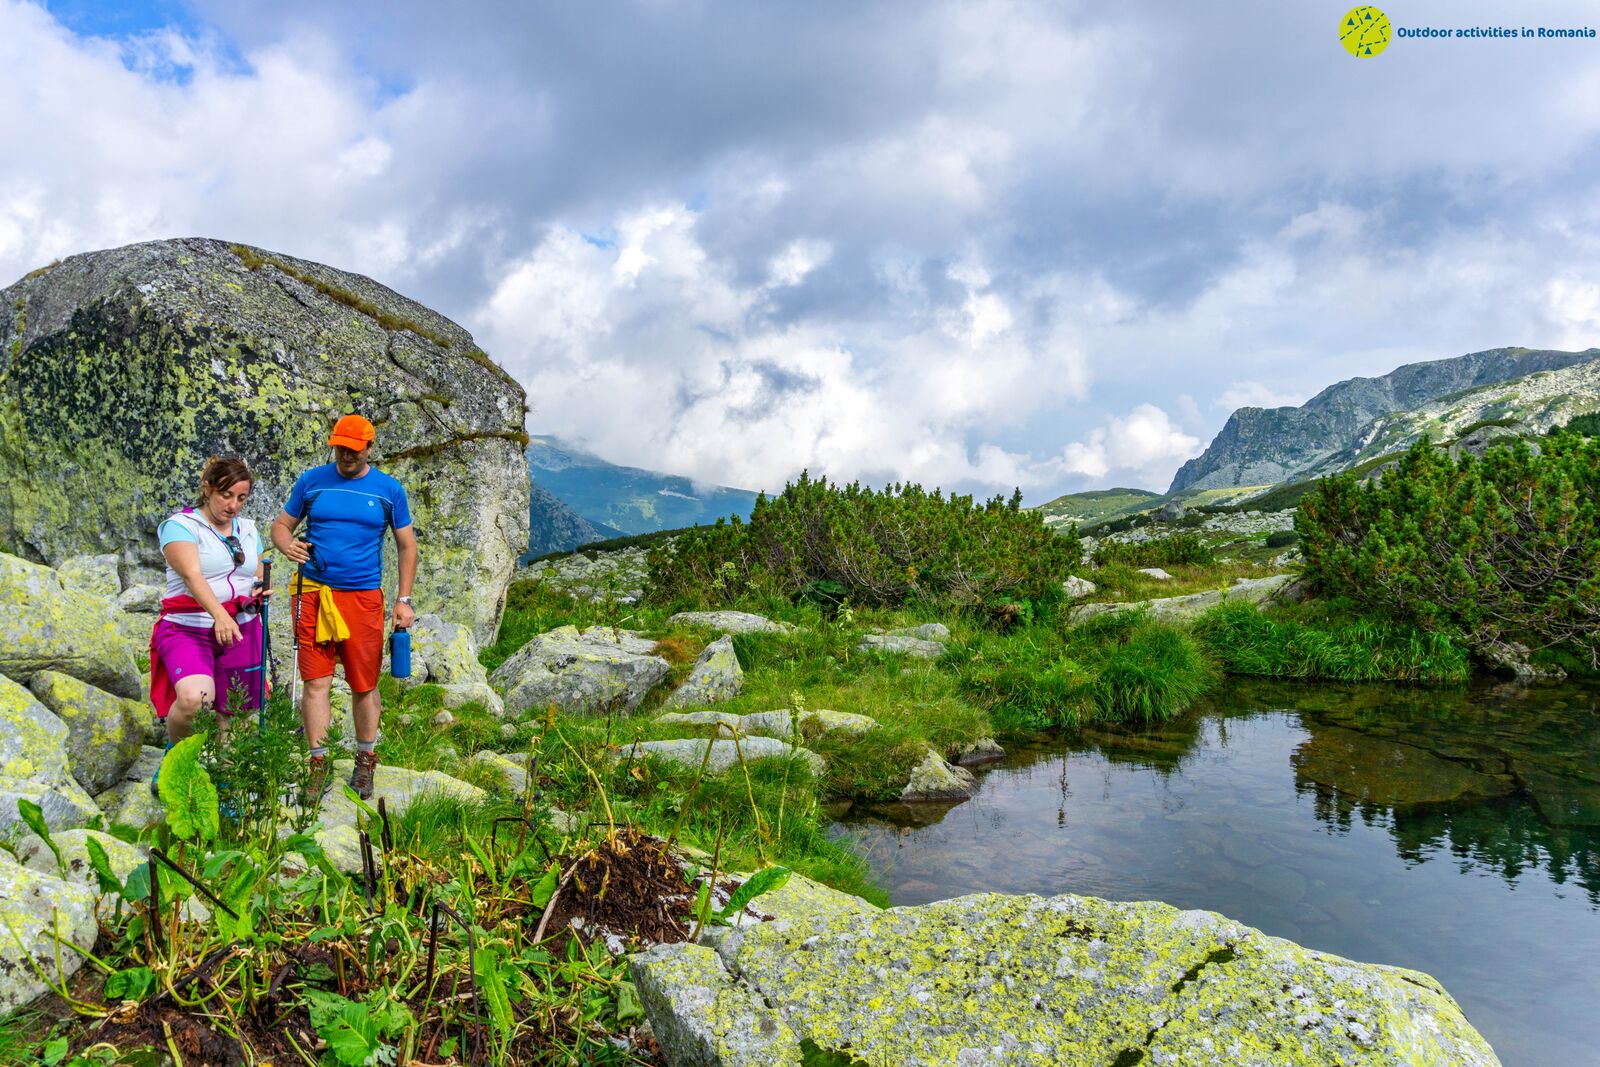 There's a whole lot more to explore and discover in Romania other than Dracula and its castles! Pictured here: Retezat National Park with Outdoor Activities in Romania